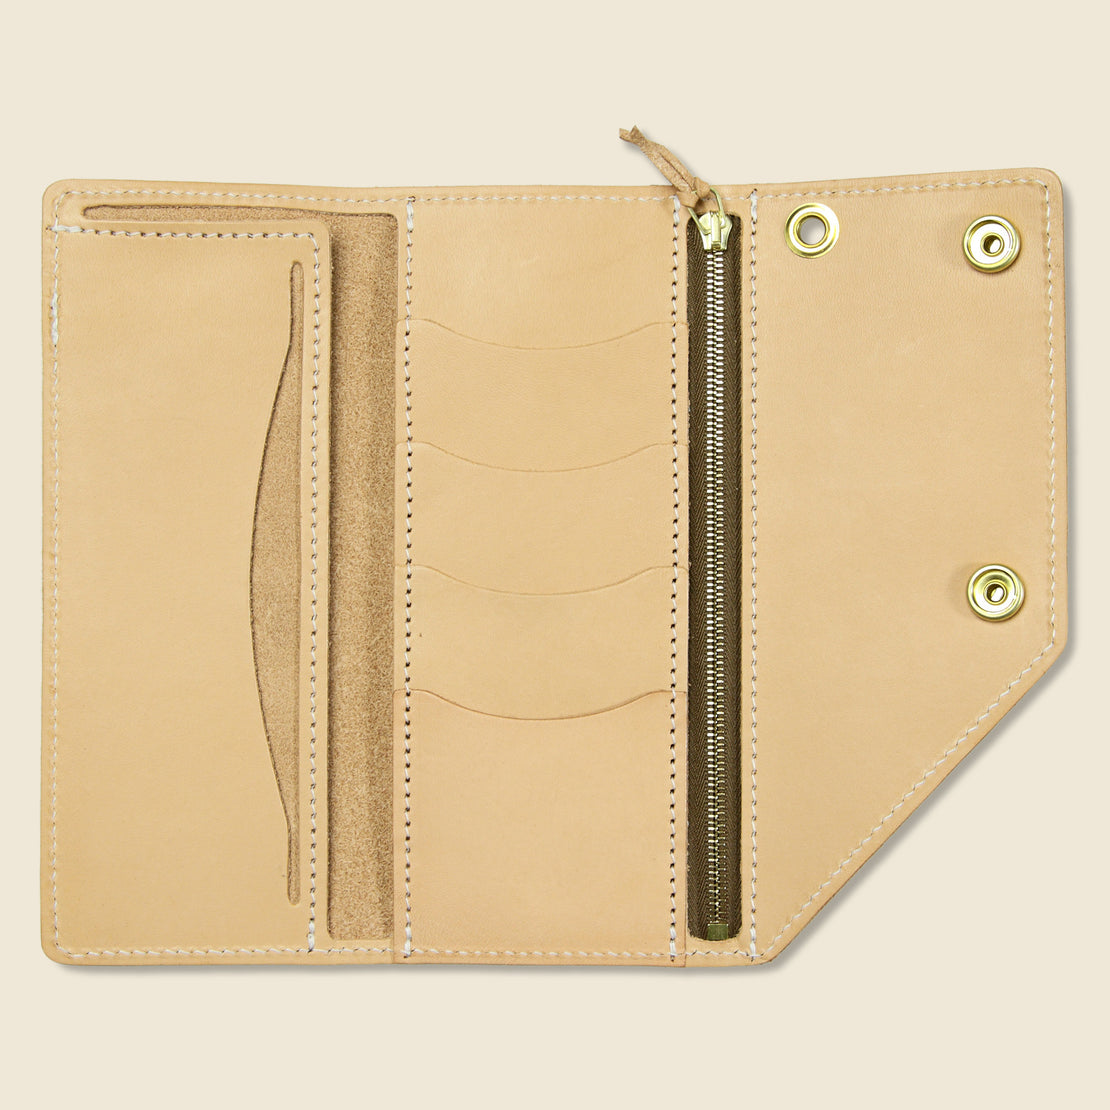 Workman Wallet - Natural - Tanner - STAG Provisions - Accessories - Wallets